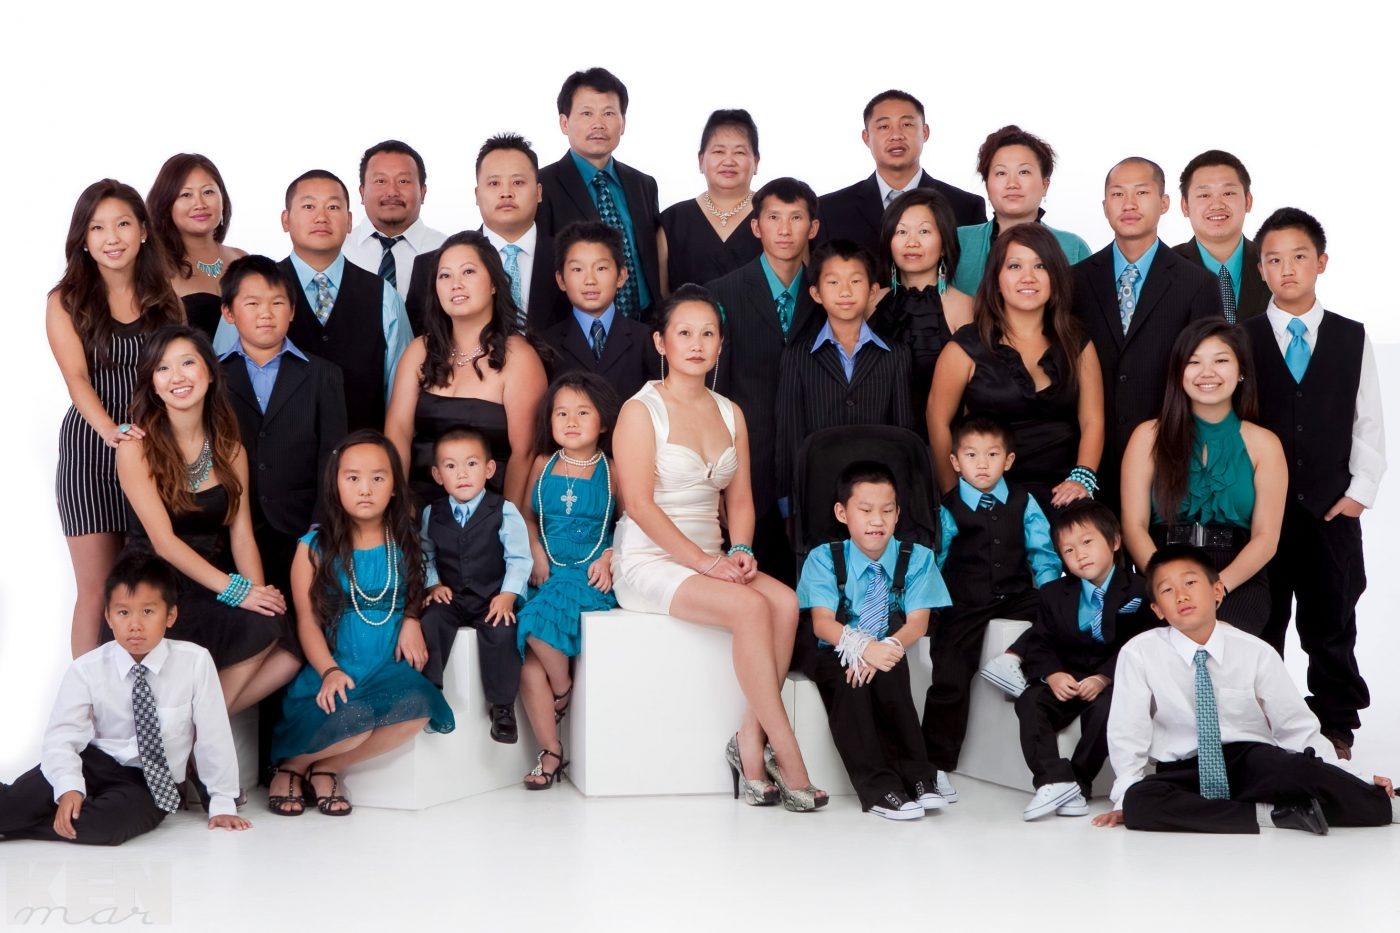 A family of 30 poses comfortably against a white background